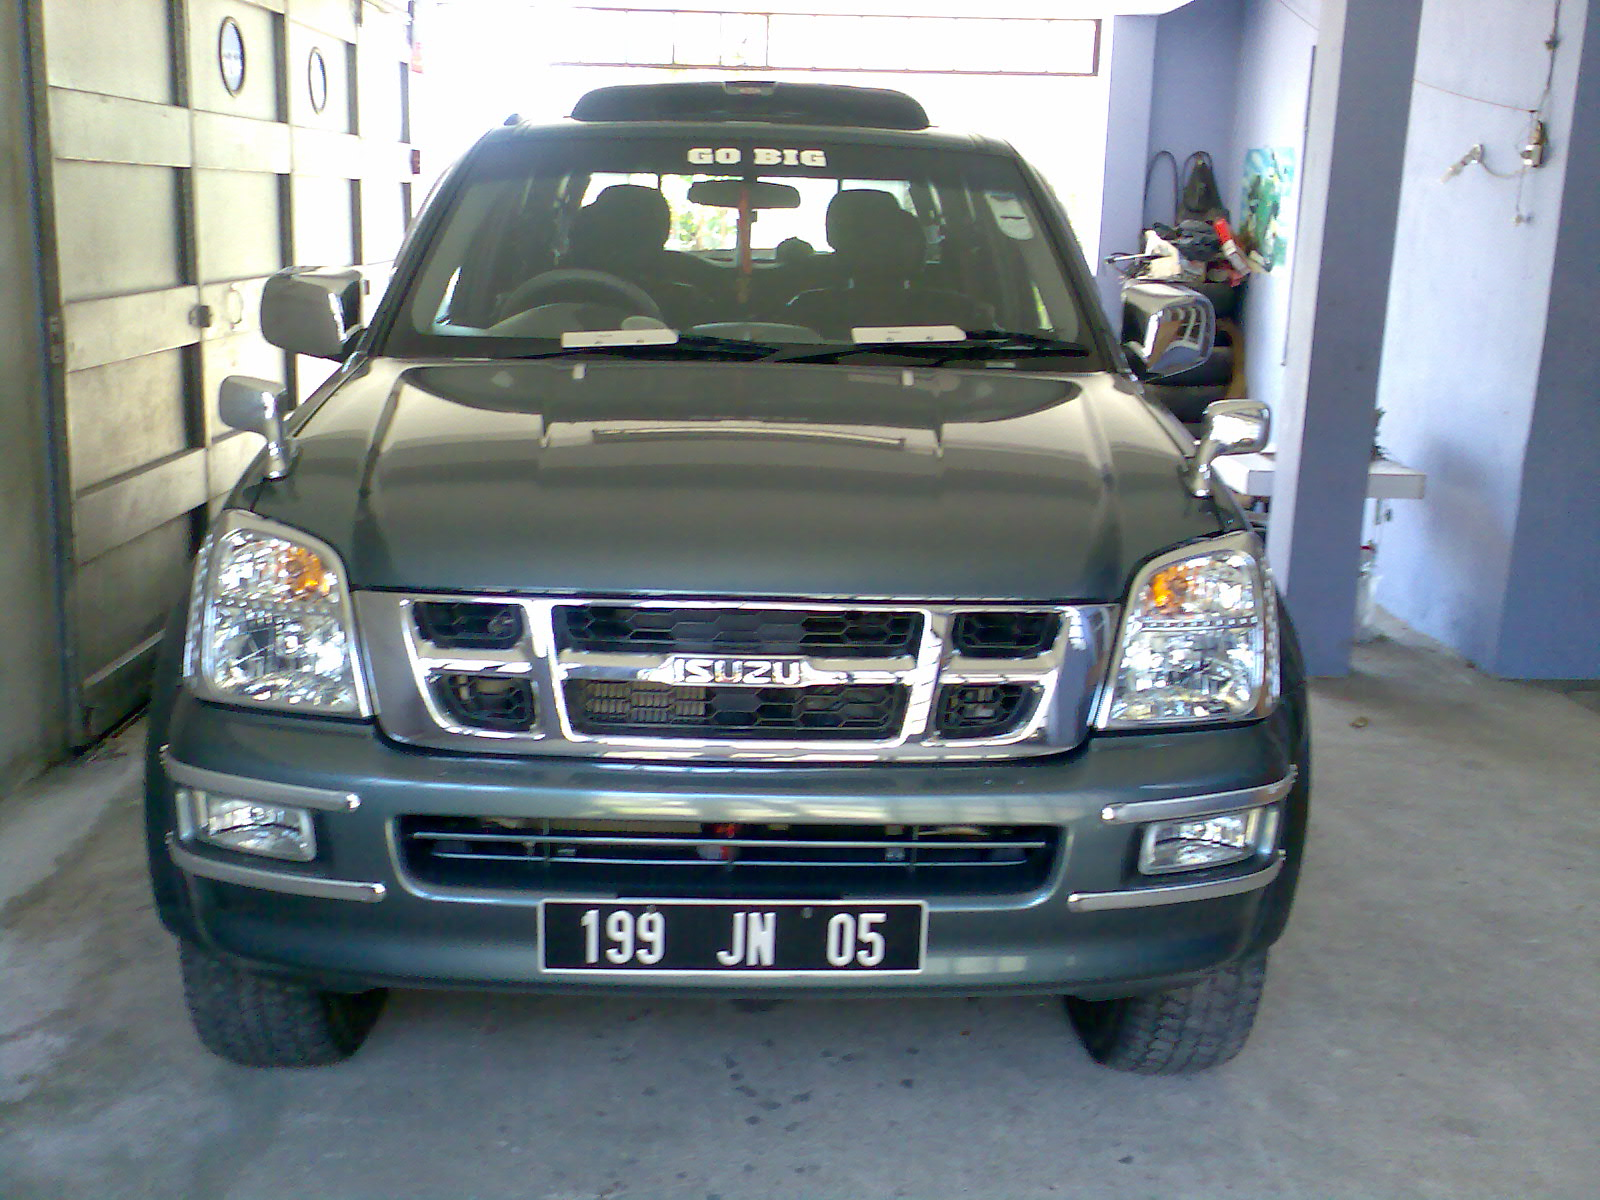 Isuzu i-Series 2006 #6